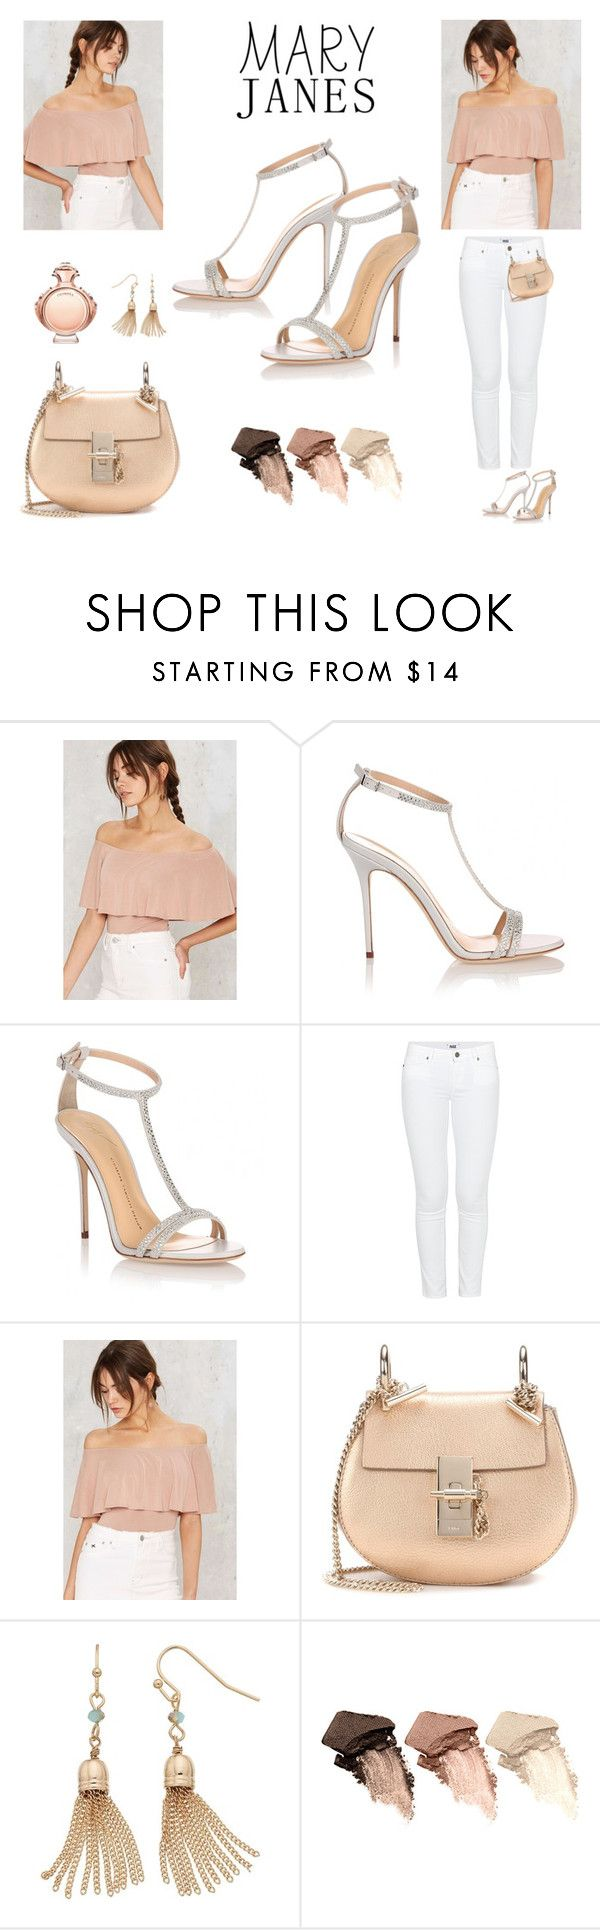 """Off The Shoulder Top"" by monruem on Polyvore featuring Giuseppe Zanotti, Paige Denim, Chloé, LC Lauren Conrad, Urban Decay and Paco Rabanne"